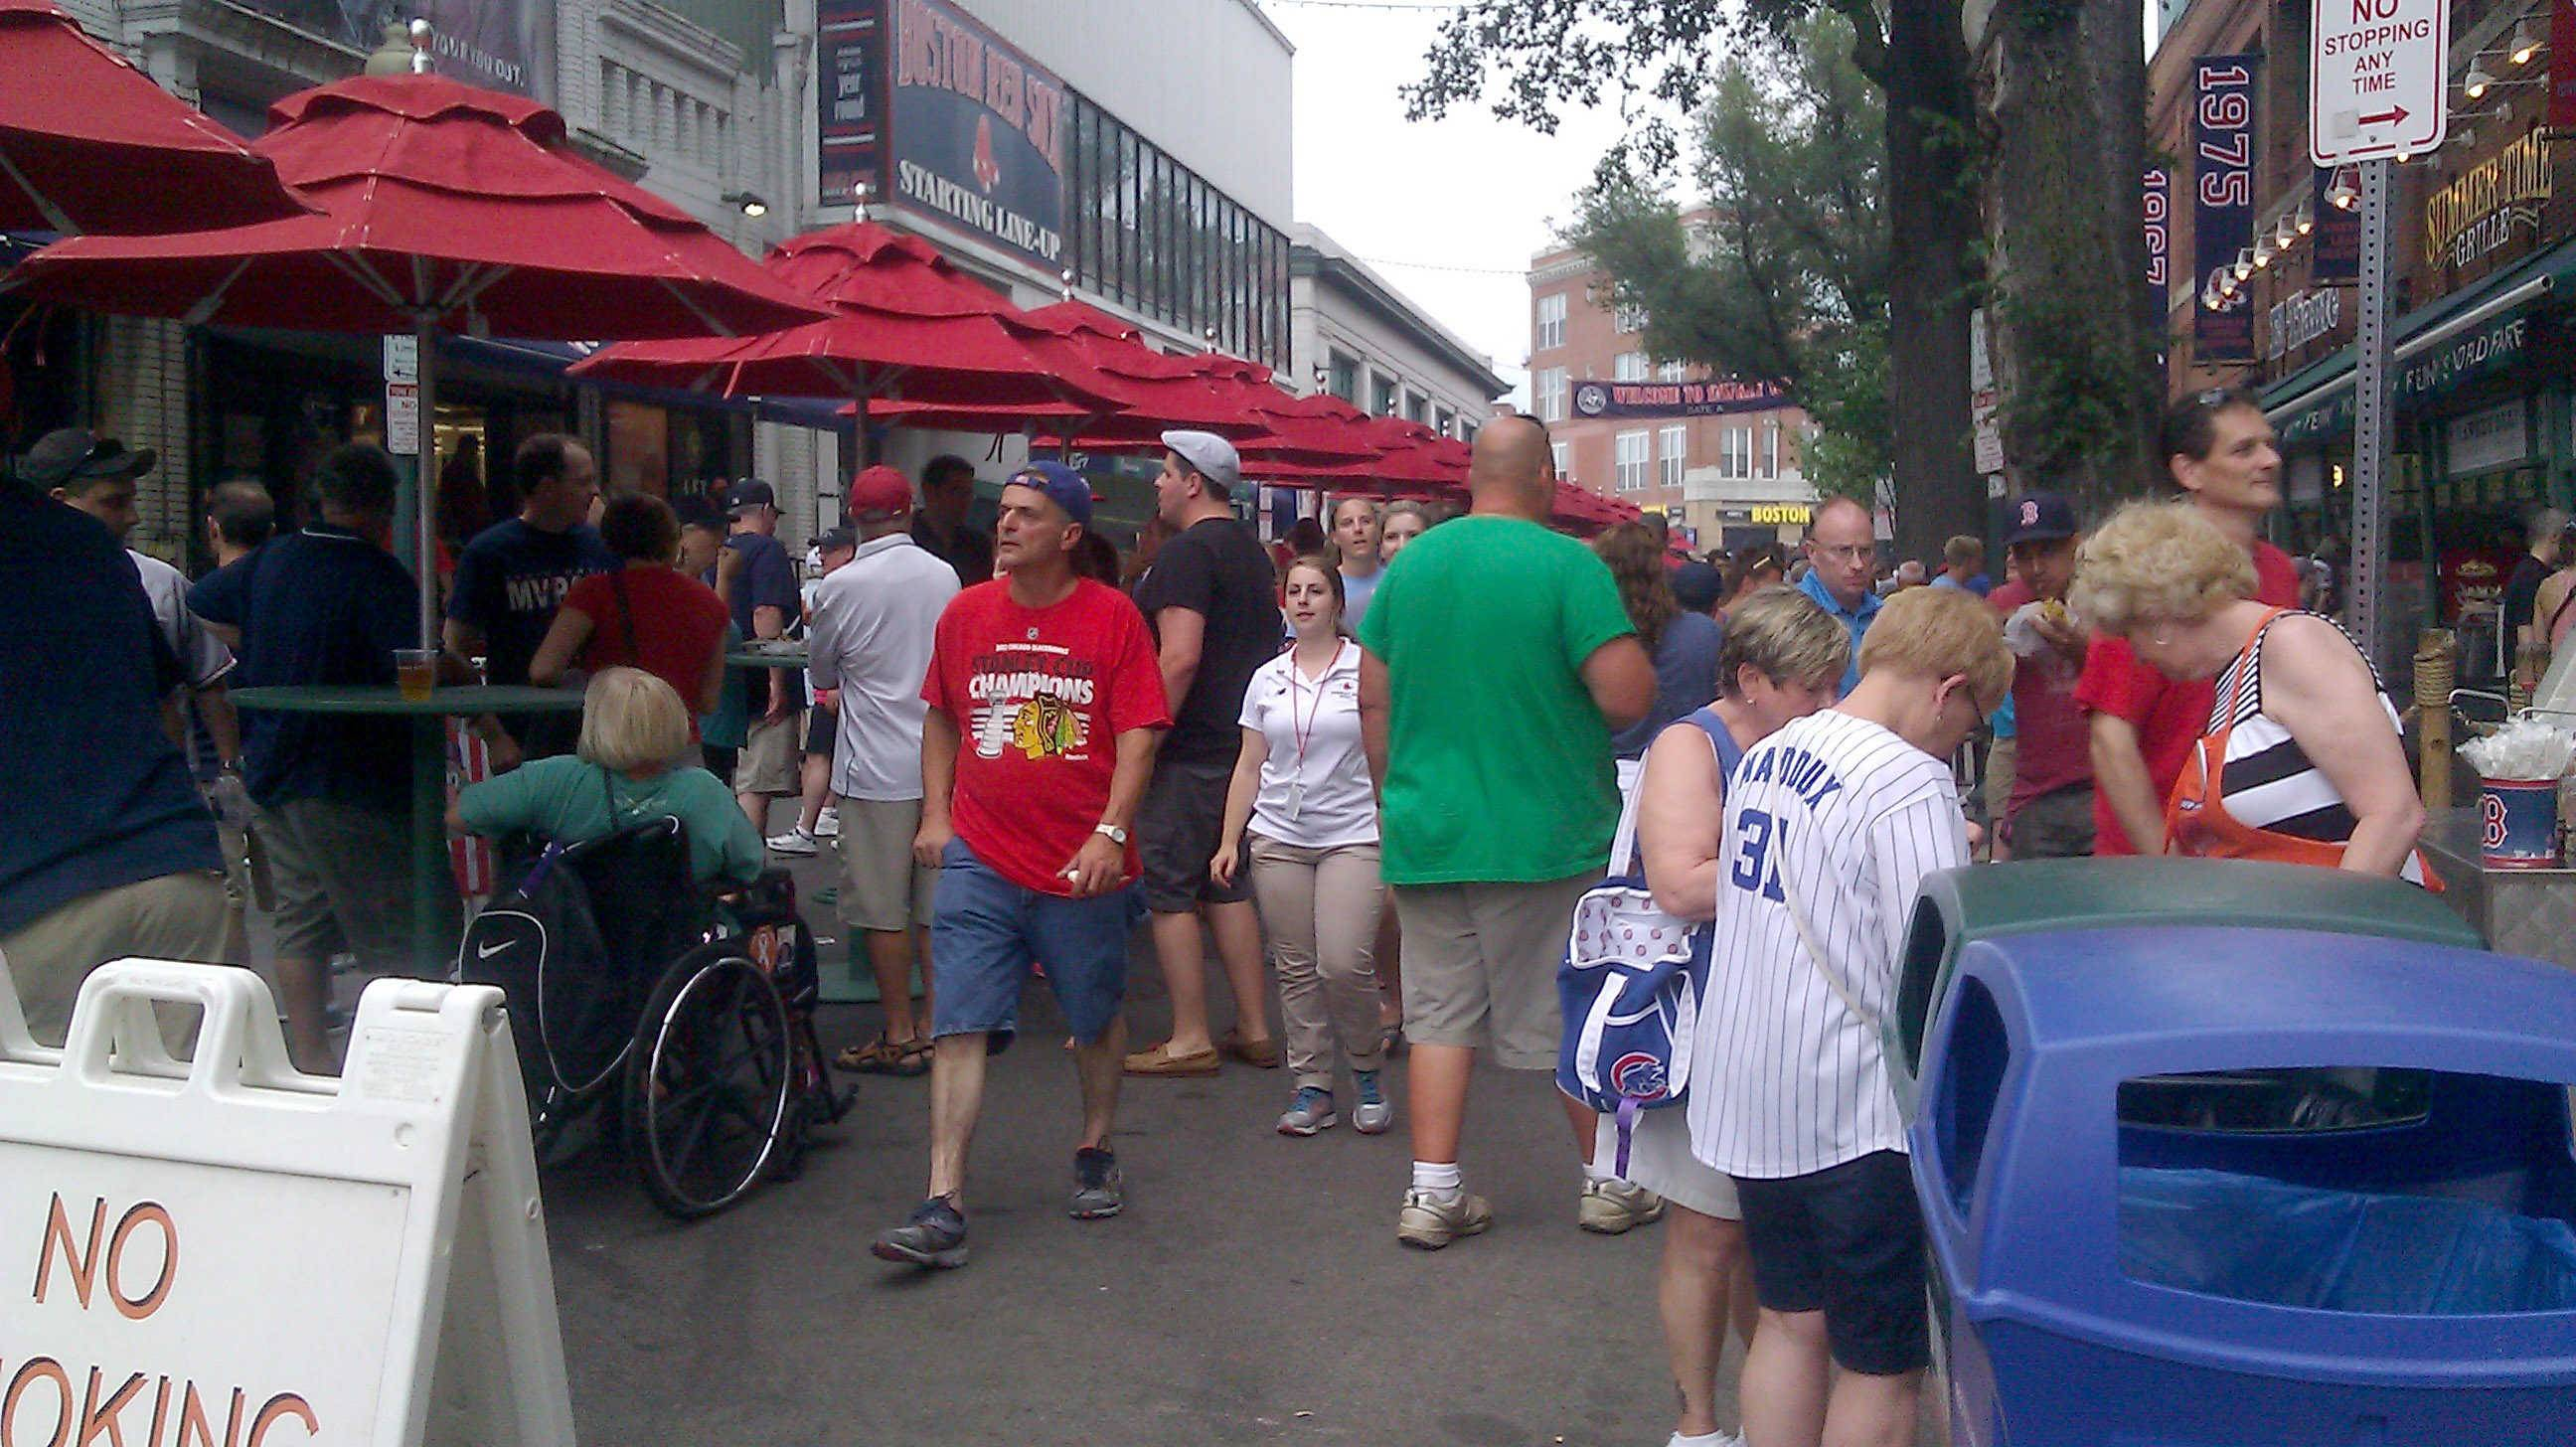 Yawkey Way, a street that runs along Fenway Park in Boston, is closed off on game days so Red Sox fans and enjoy the atmosphere outside the ballpark.